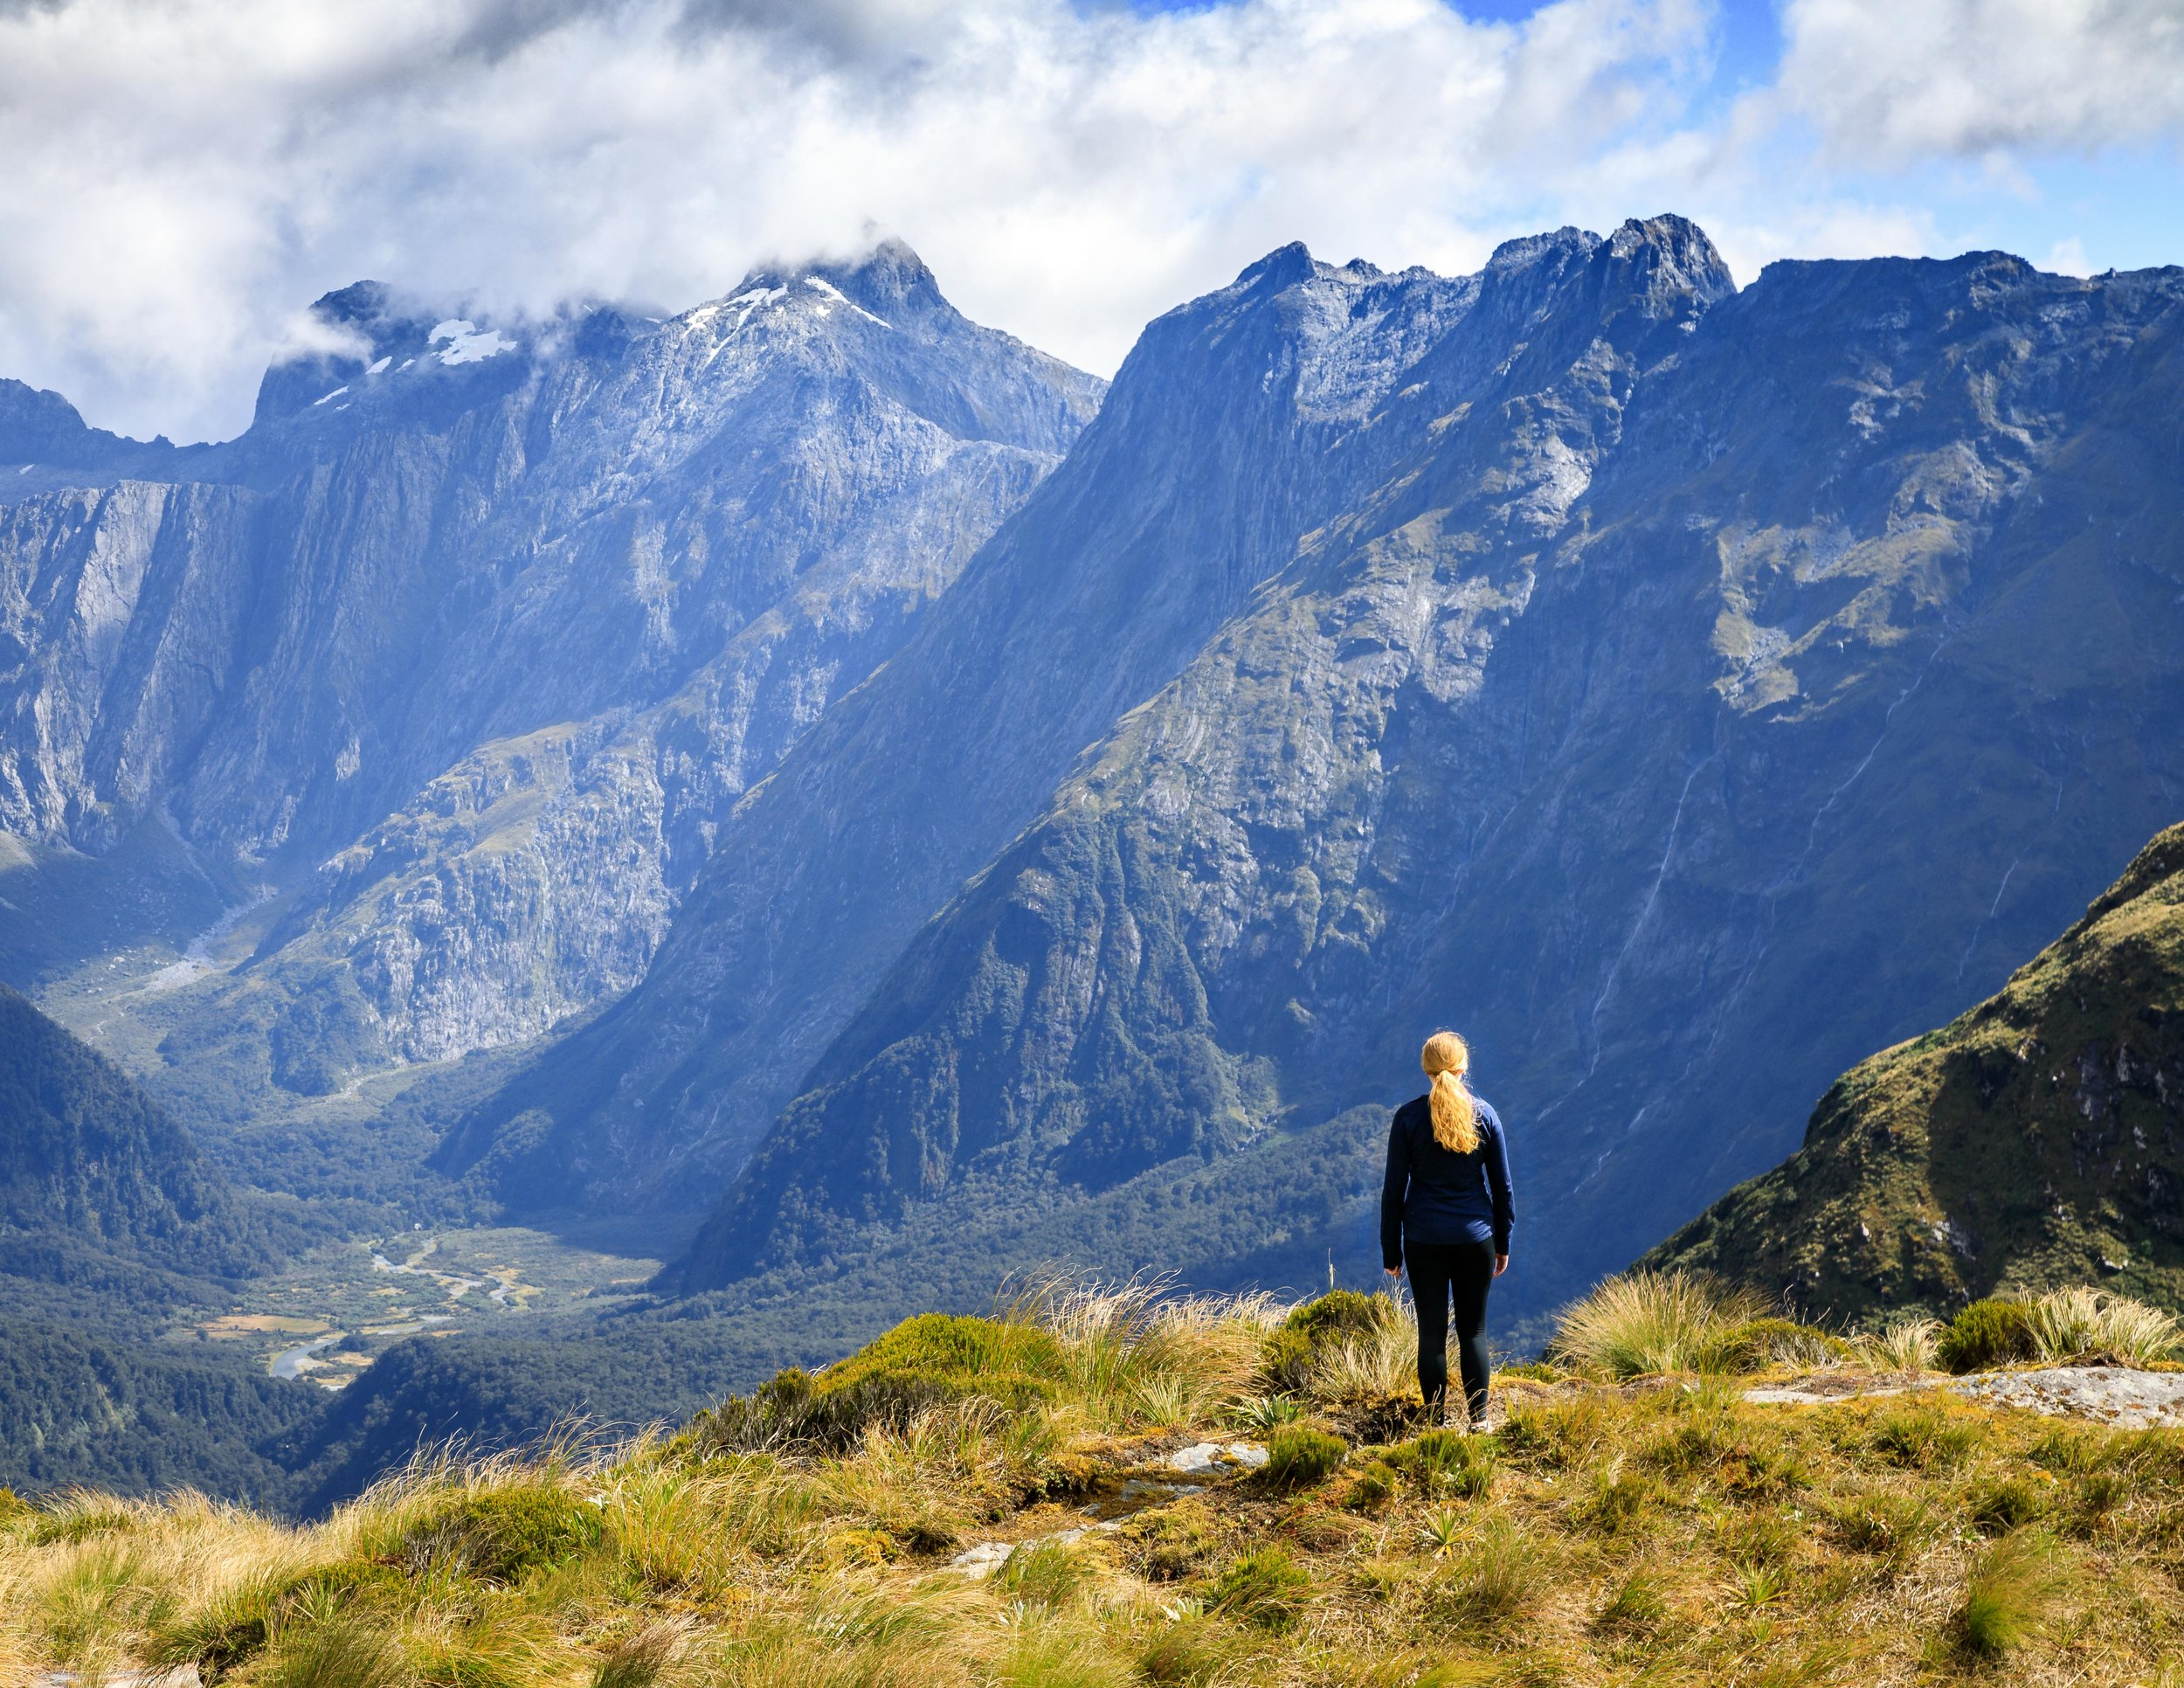 The Milford Track: the MacKinnon Pass